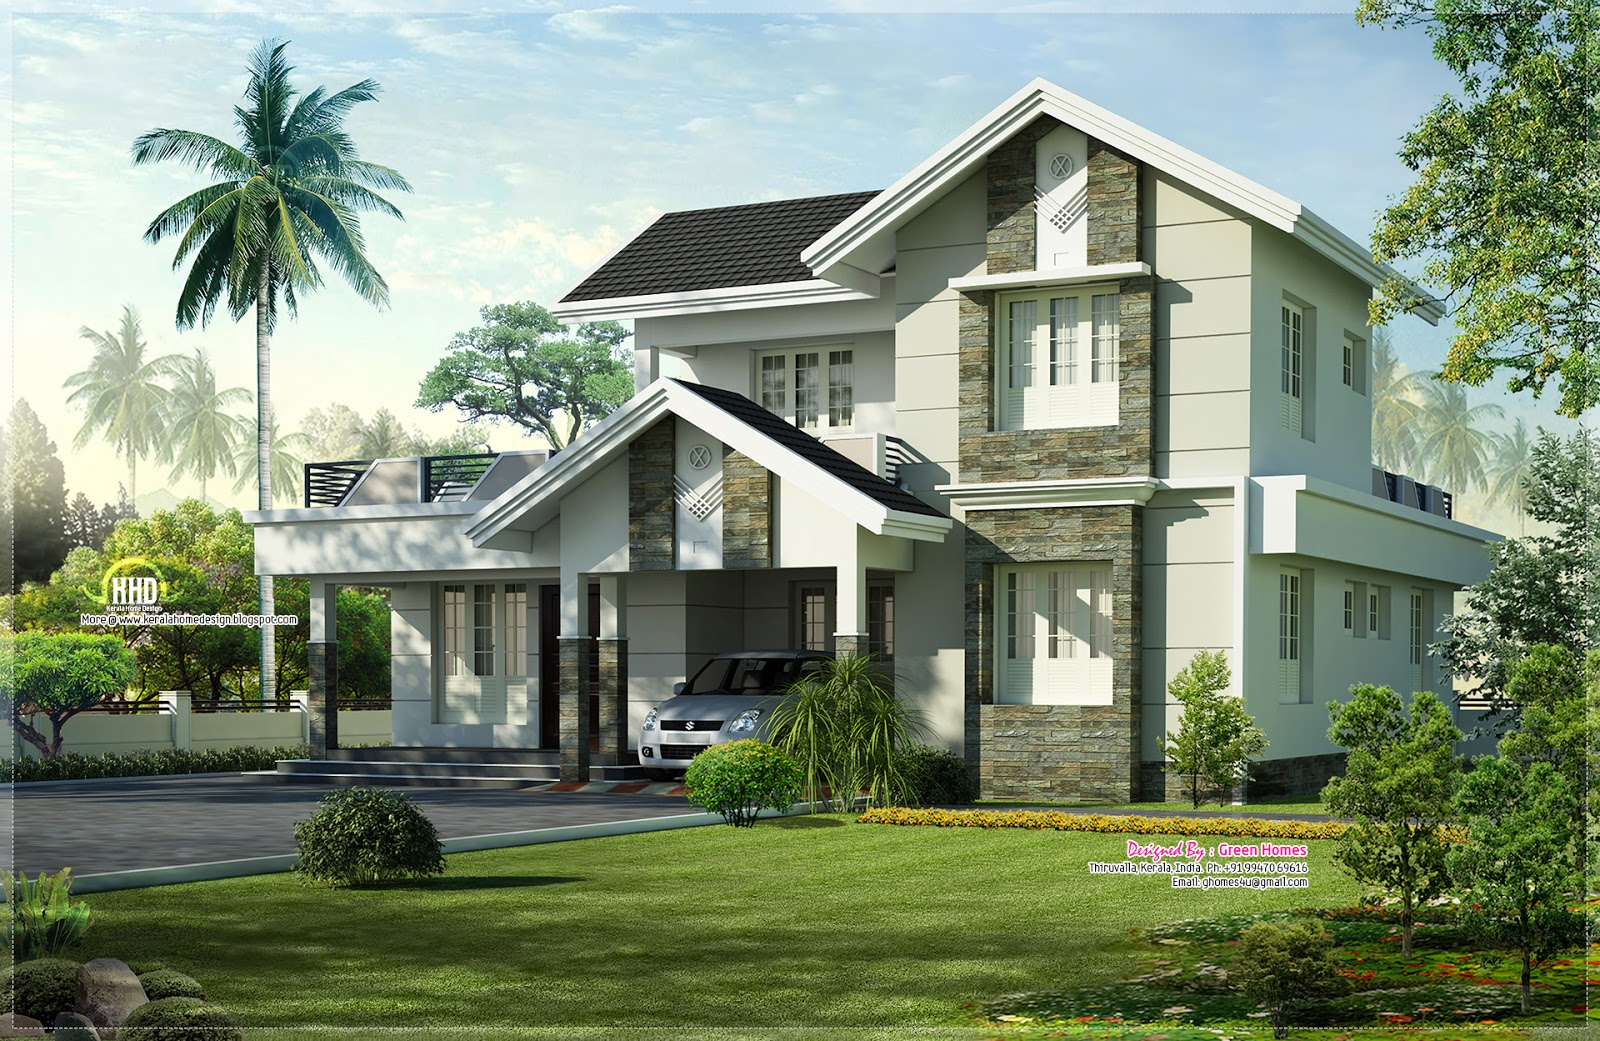 1975 nice home exterior design home kerala plans - House to home designs ...